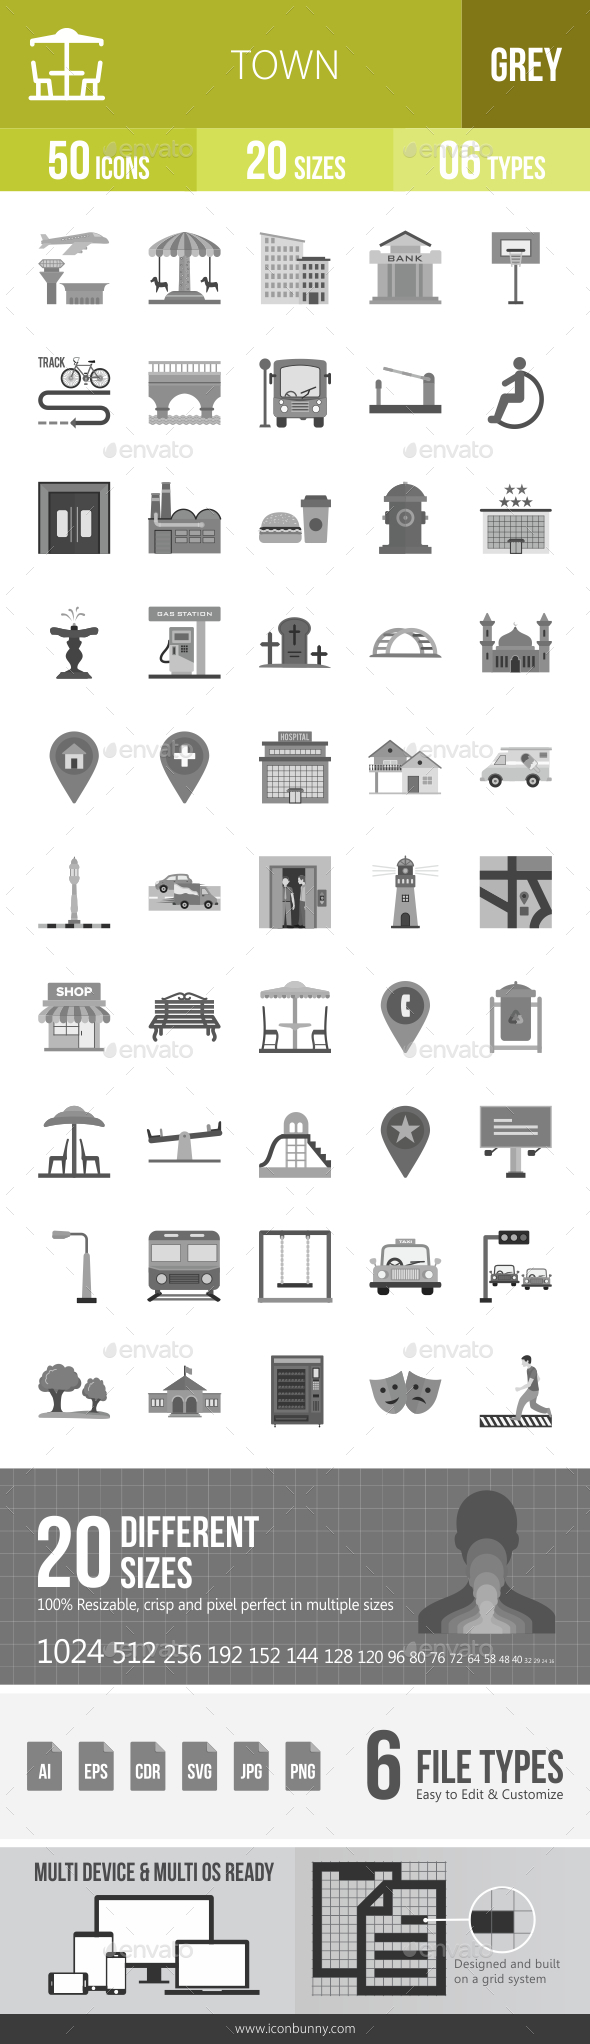 Town Greyscale Icons - Icons